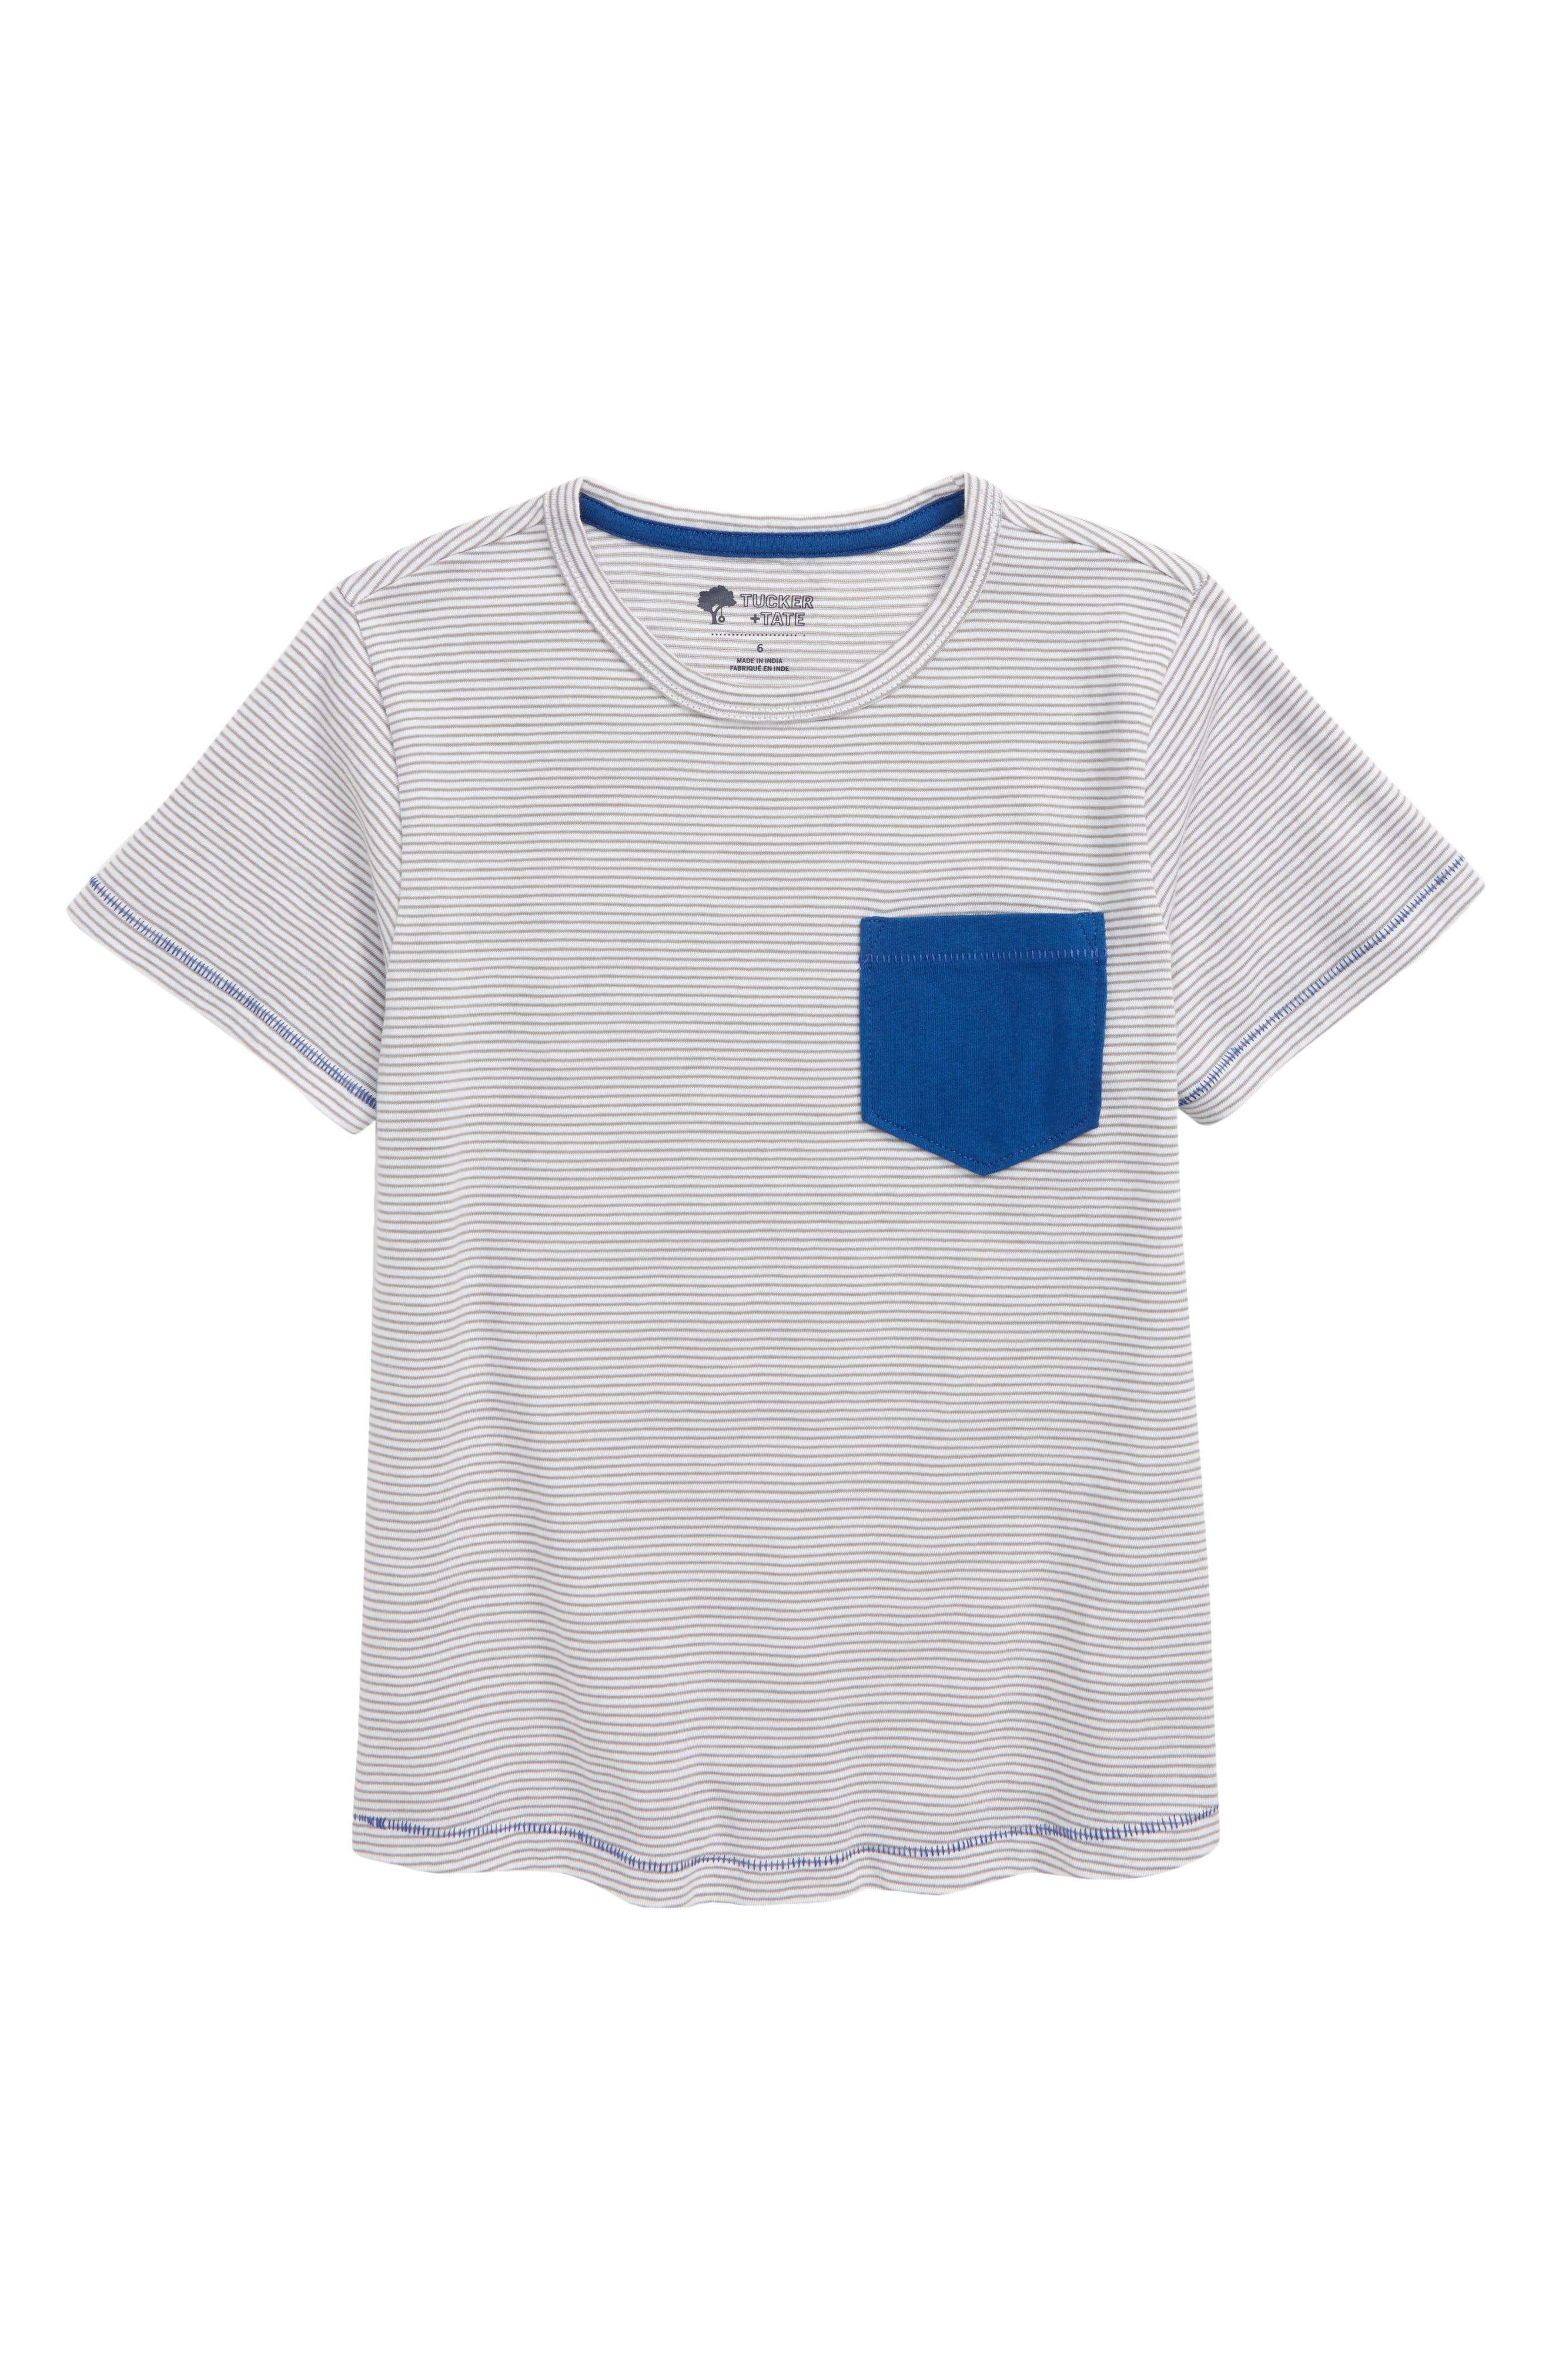 A colorful pocket pops at the chest of a T-shirt made with soft cotton and rings of pale pinstripes. Style Name: Tucker + Tate Kids\\\' Stripe Pocket T-Shirt (Toddler & Little Boy). Style Number: 6027188. Available in stores.